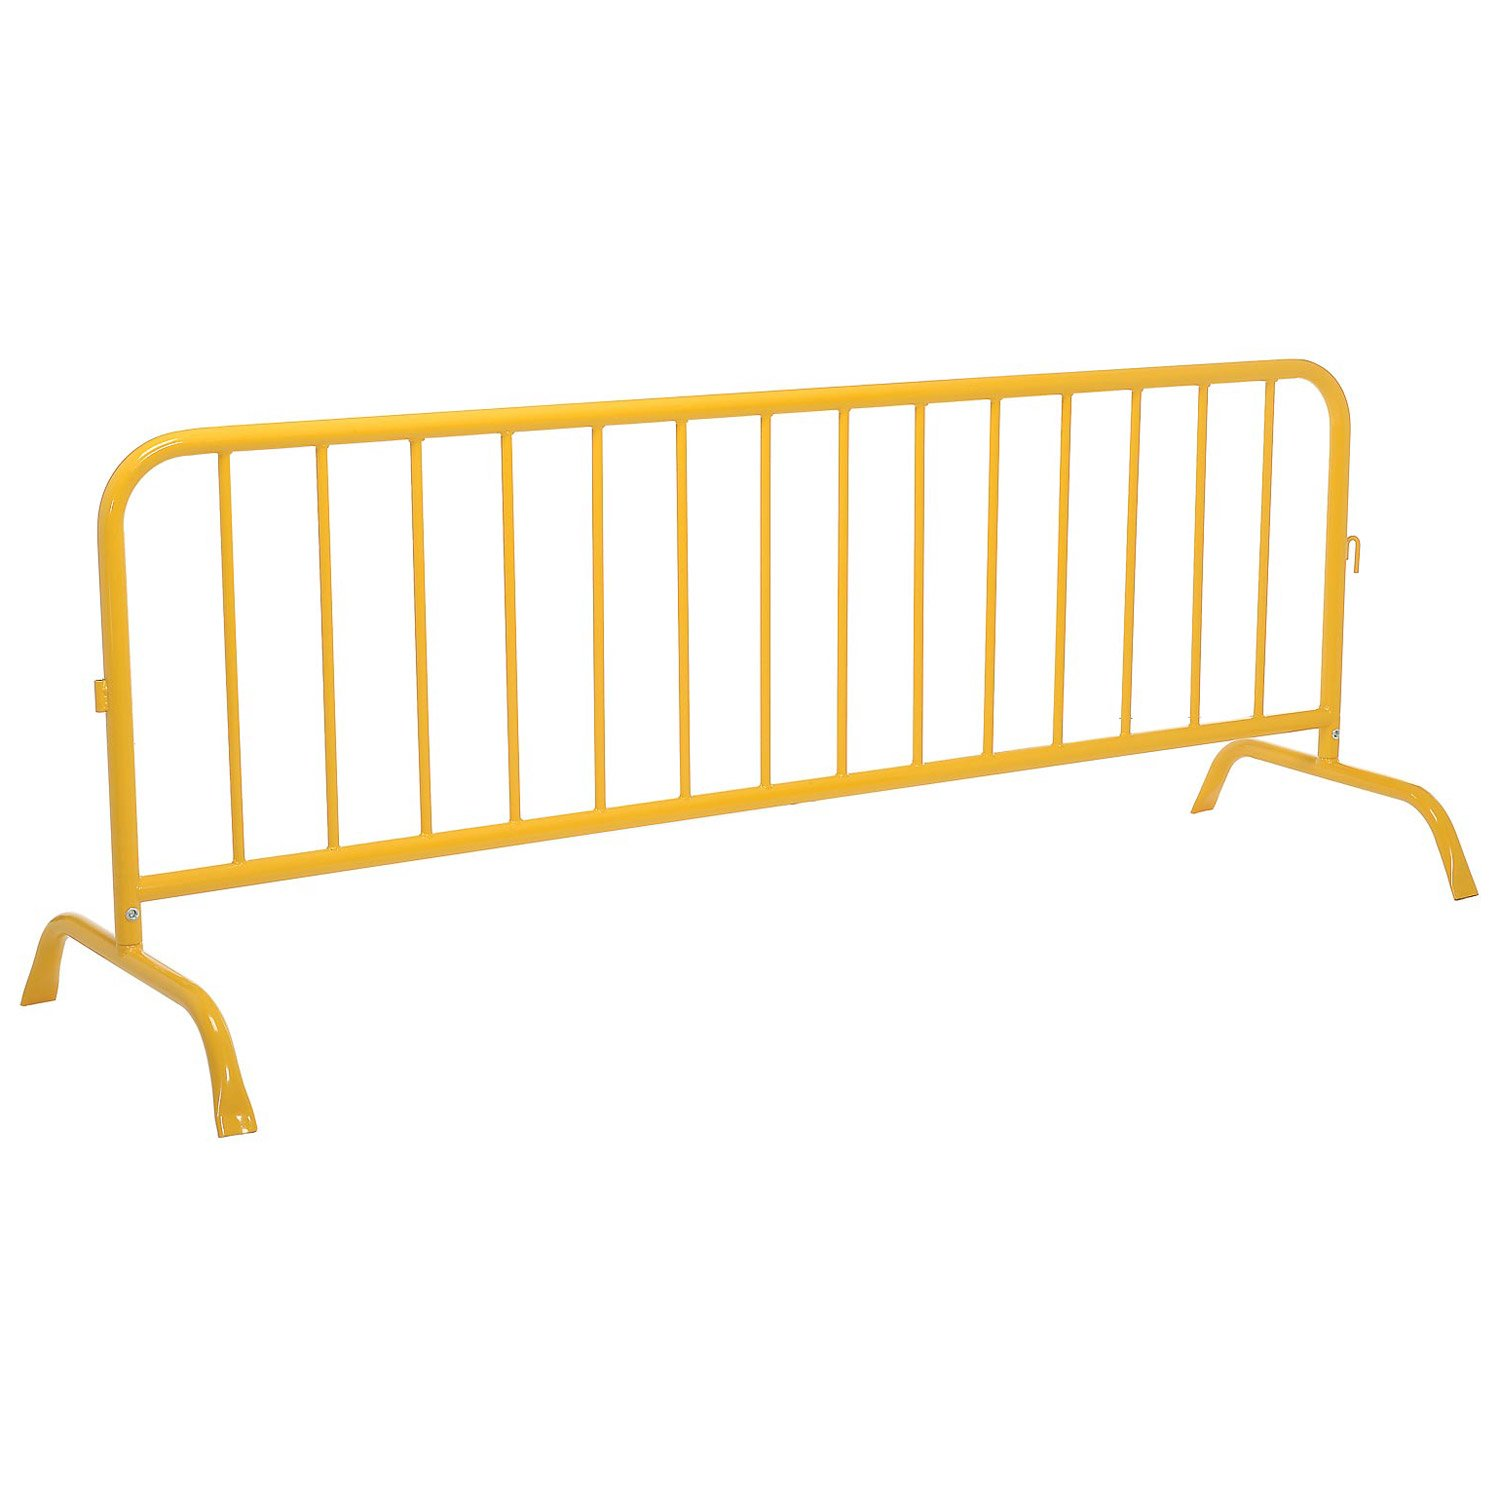 Crowd Control Barrier, Yellow Powder Coated Steel, 102''L x 40''H